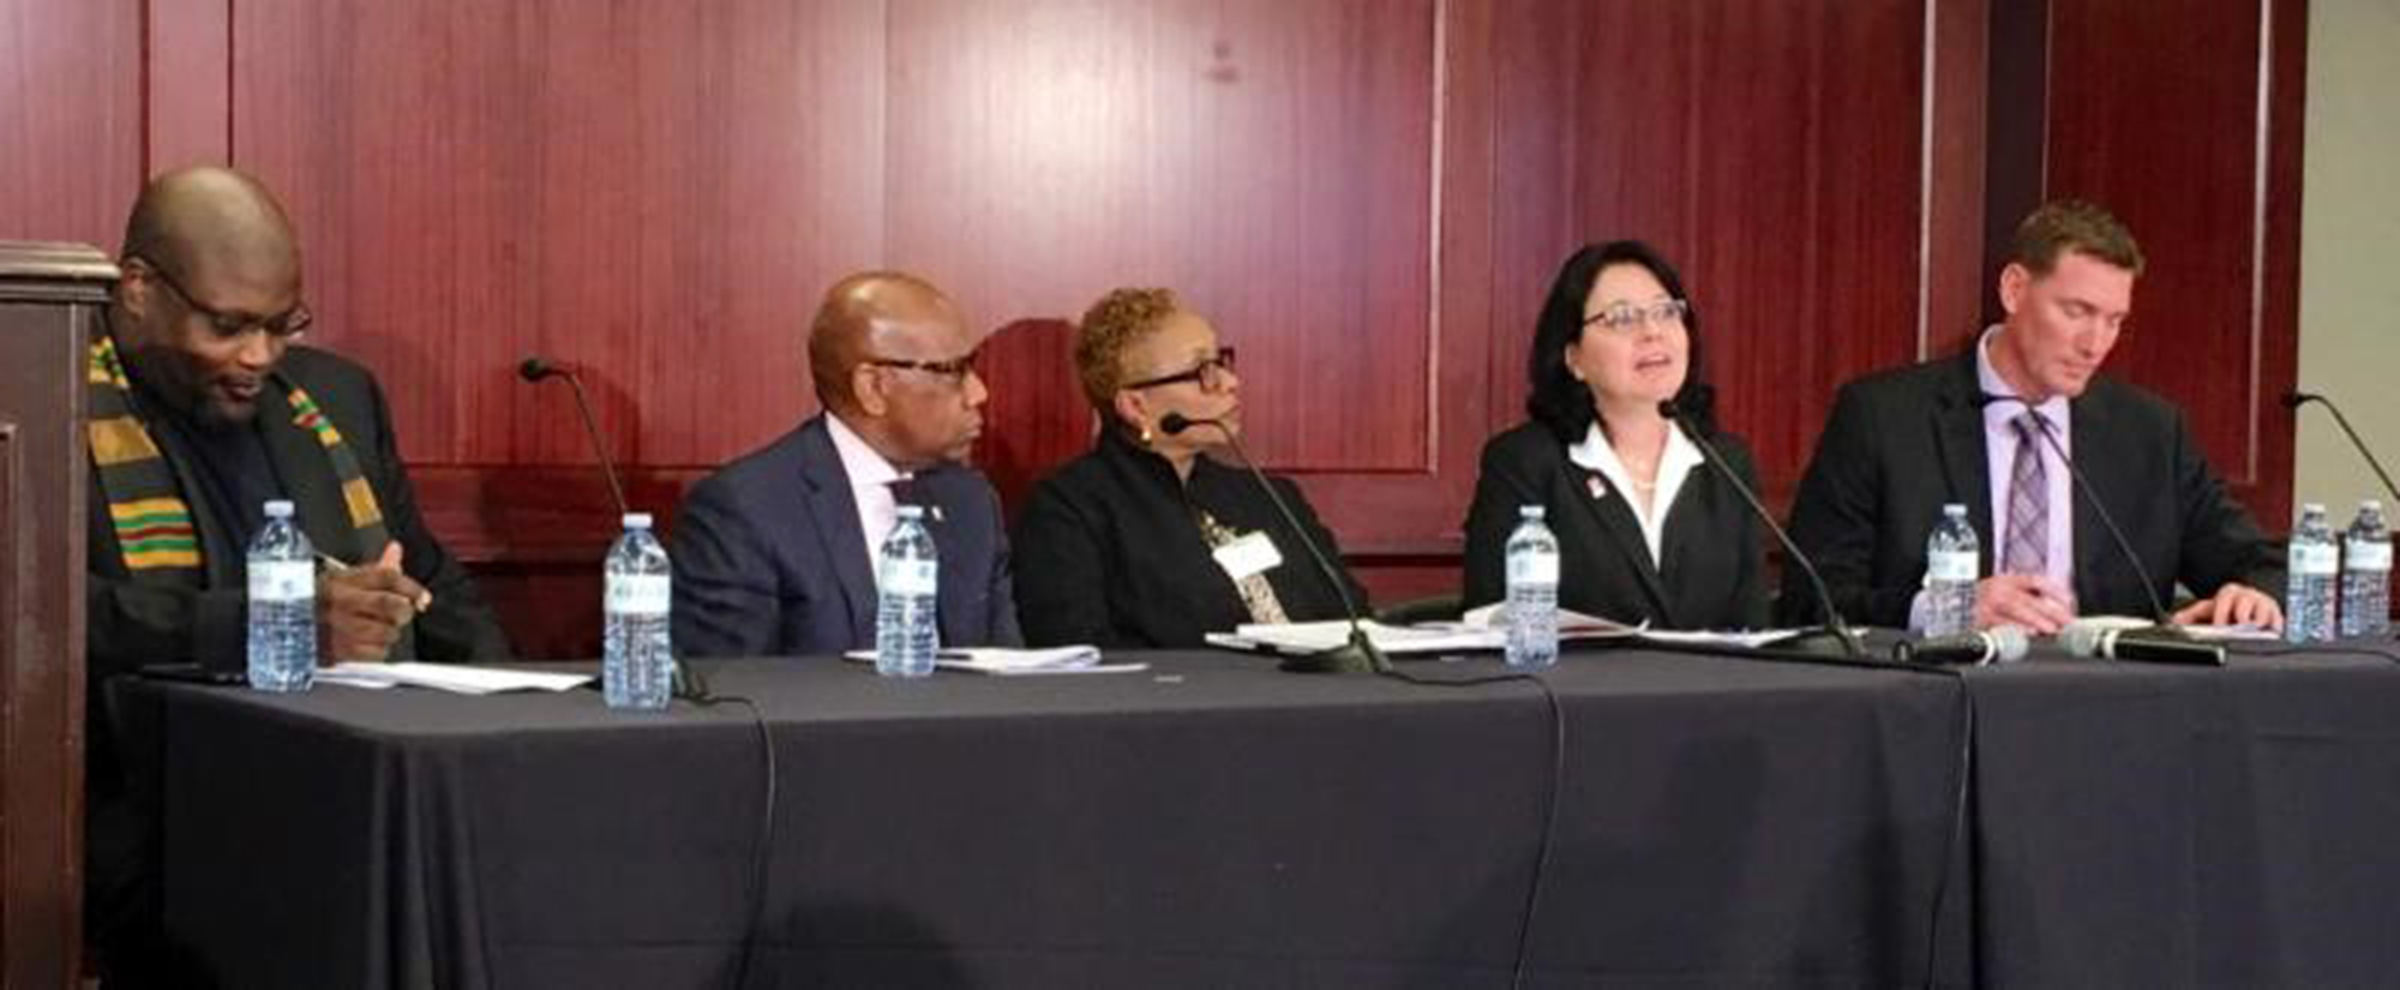 Lufkin Serves on Diverse Workforce Panel